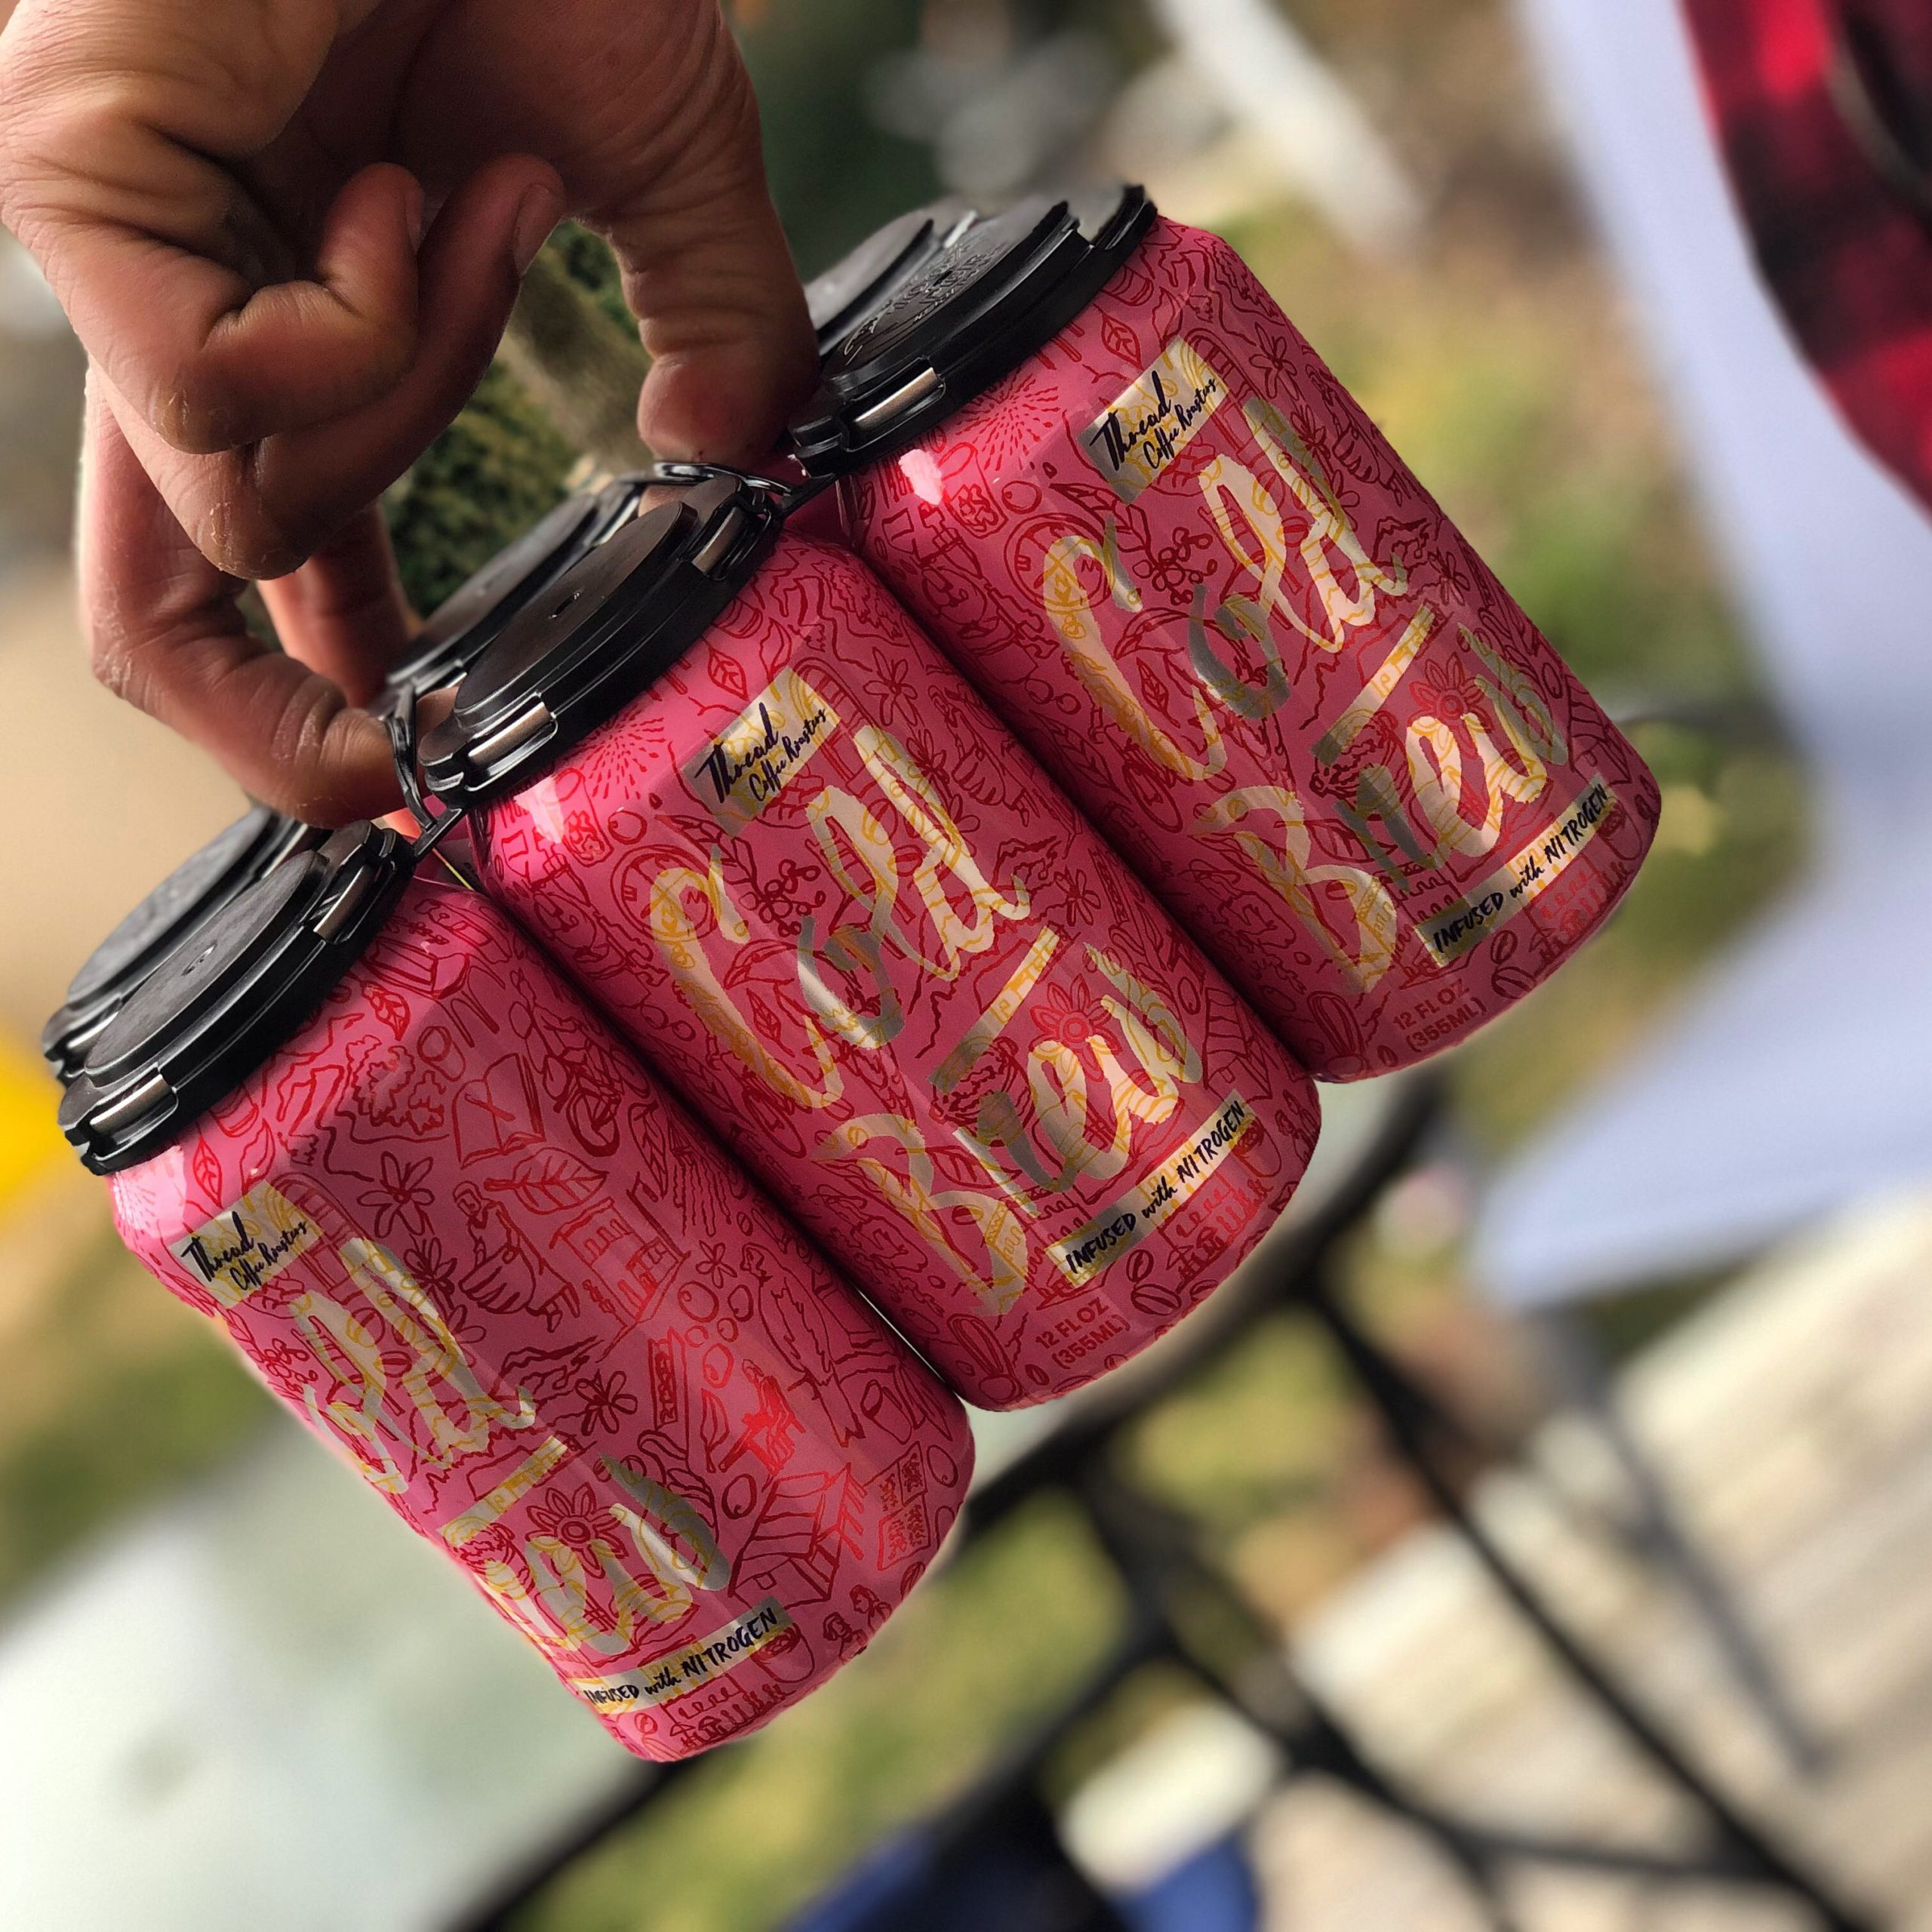 Nitro Cold Brew Cans - Local Delivery Only (Baltimore)